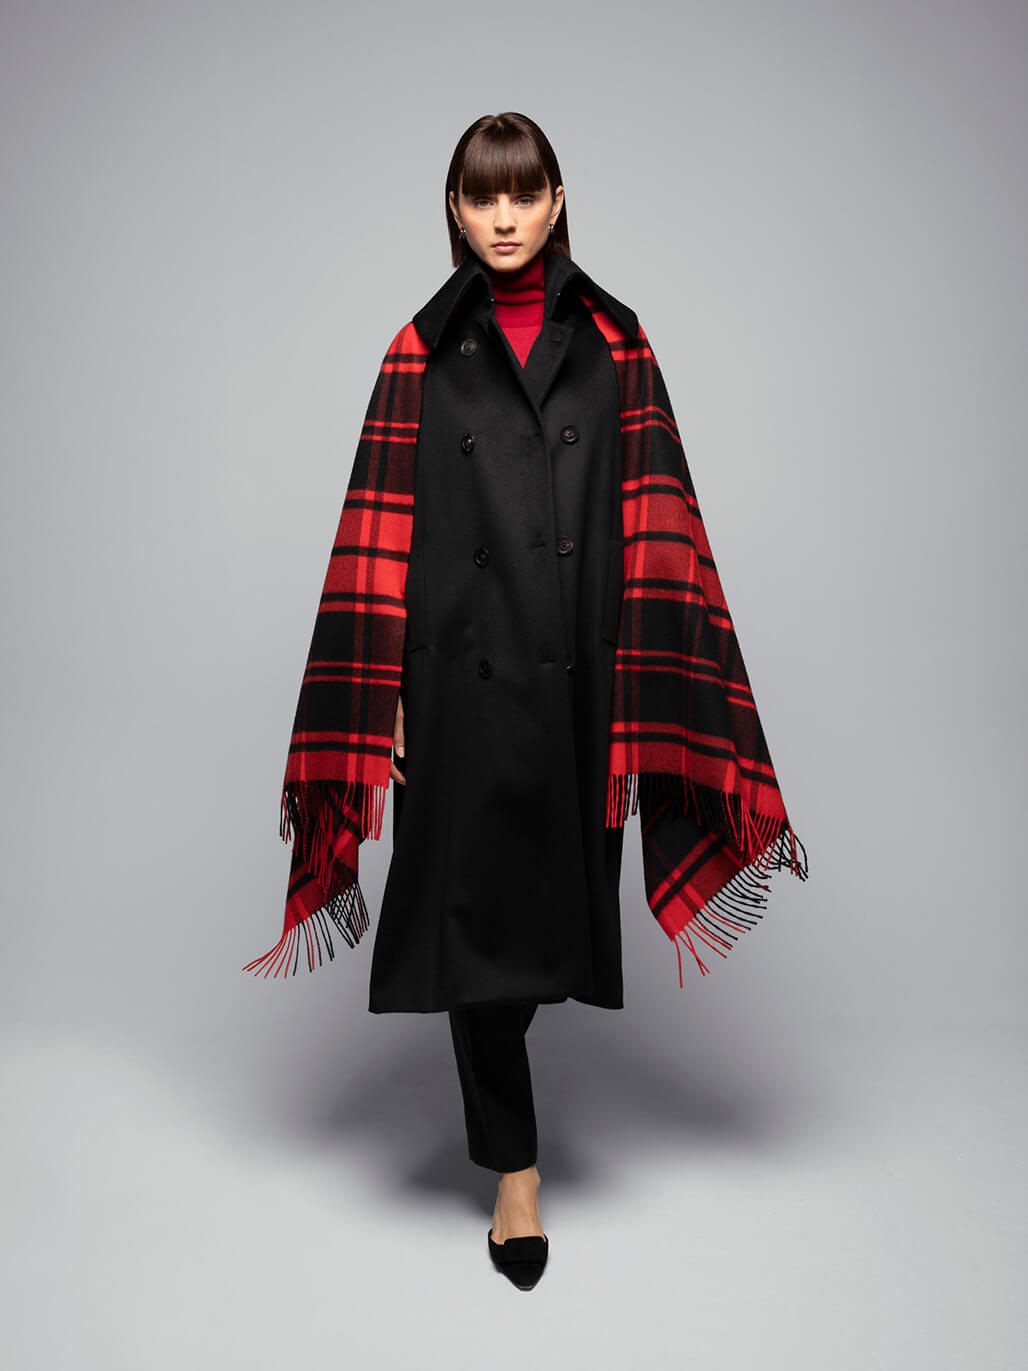 Johnstons of Elgin model wearing a Classic Tartan Cashmere Stole in Pictish Kingdom on a grey background